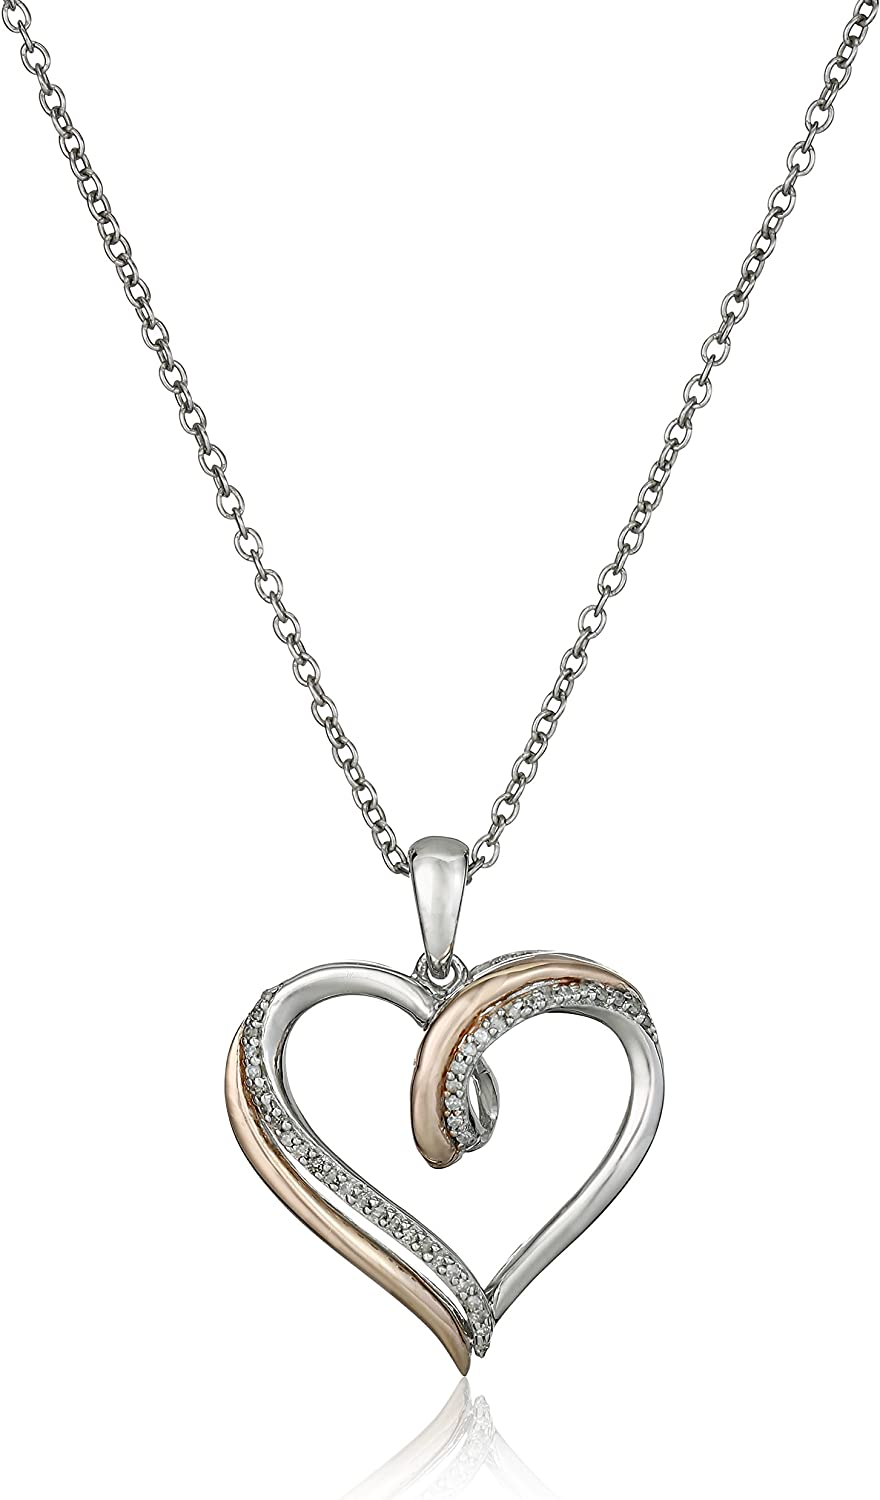 Reversible Heart Necklace With Diamonds in Silver /& 14K Rose Gold